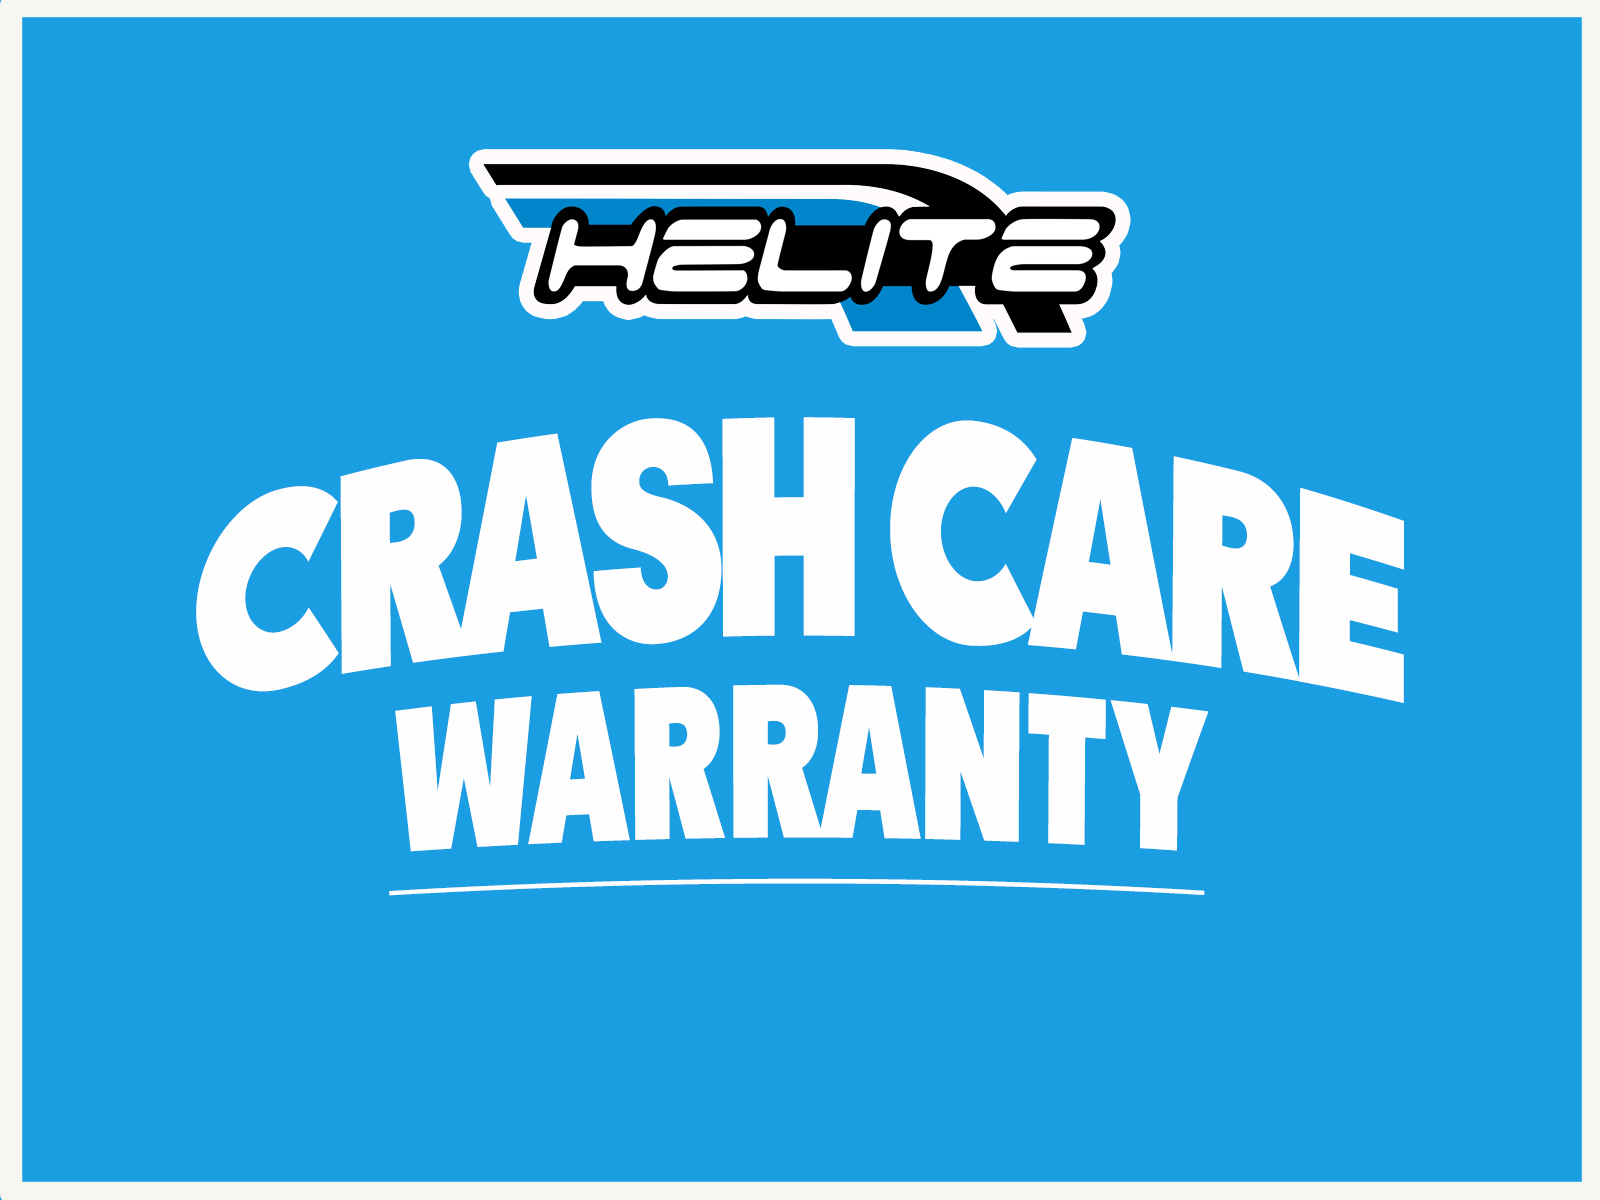 We'll repair or replace your Helite!